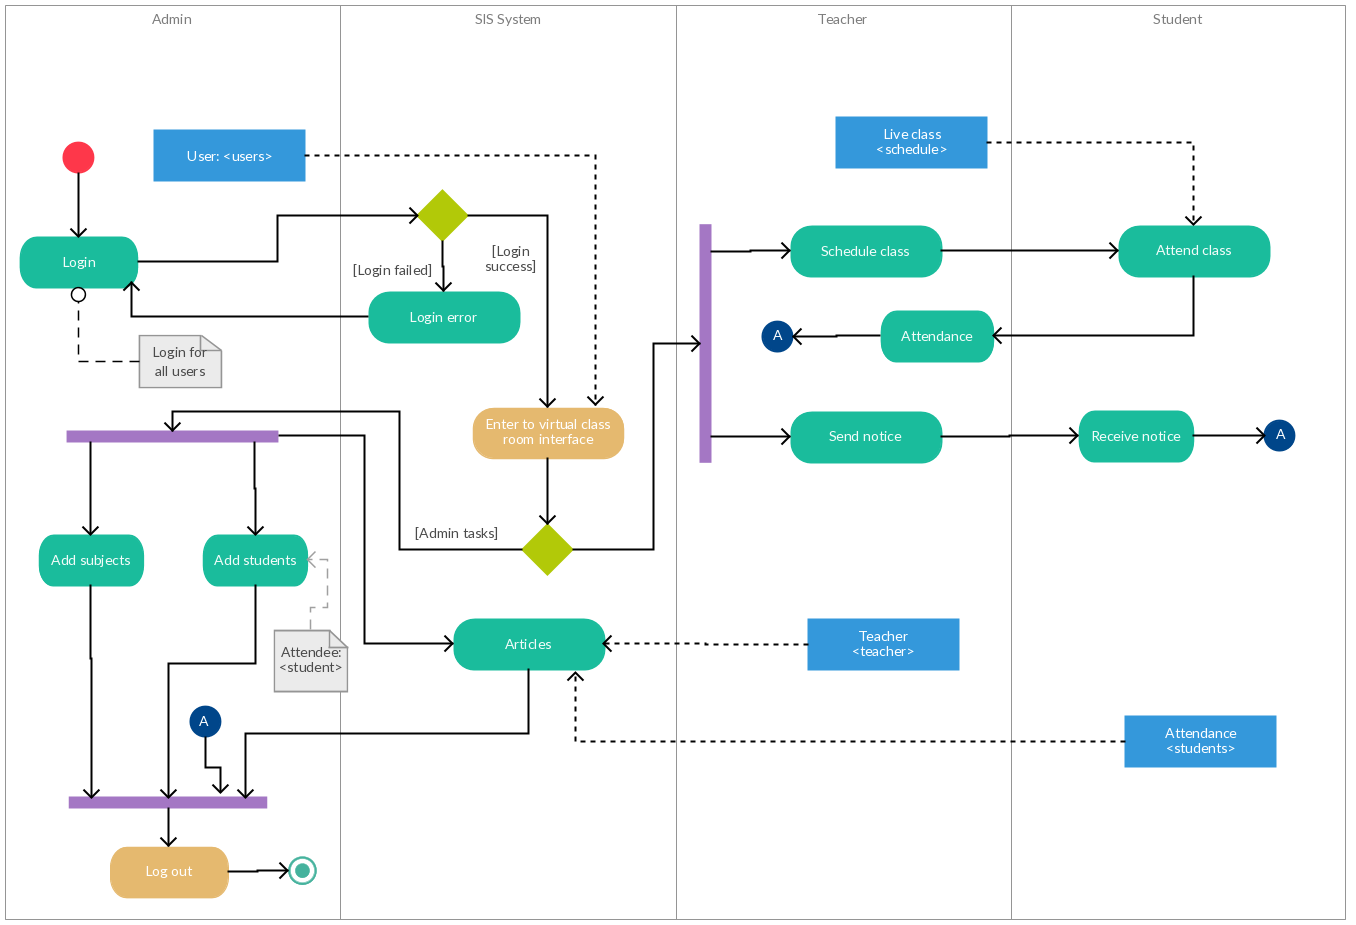 Activity diagram templates to create efficient workflows this activity diagram template for a college management system involves many subjects management systems differ ccuart Choice Image